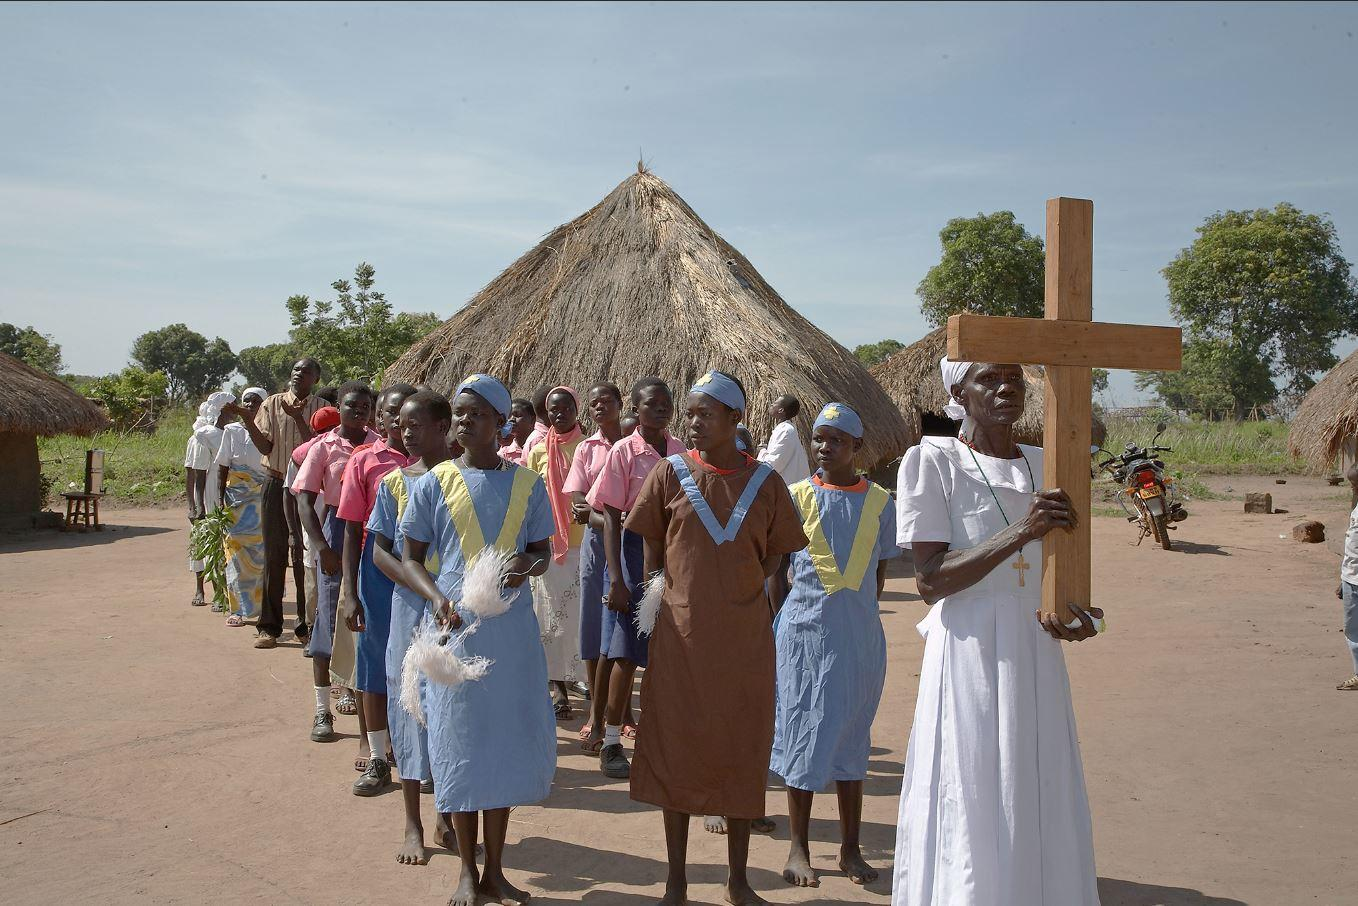 Members of the Catholic community in Yei, in southern South Sudan, celebrate the Feast of Saint Joseph. (Photo by Sean Sprague/Alamy Stock)